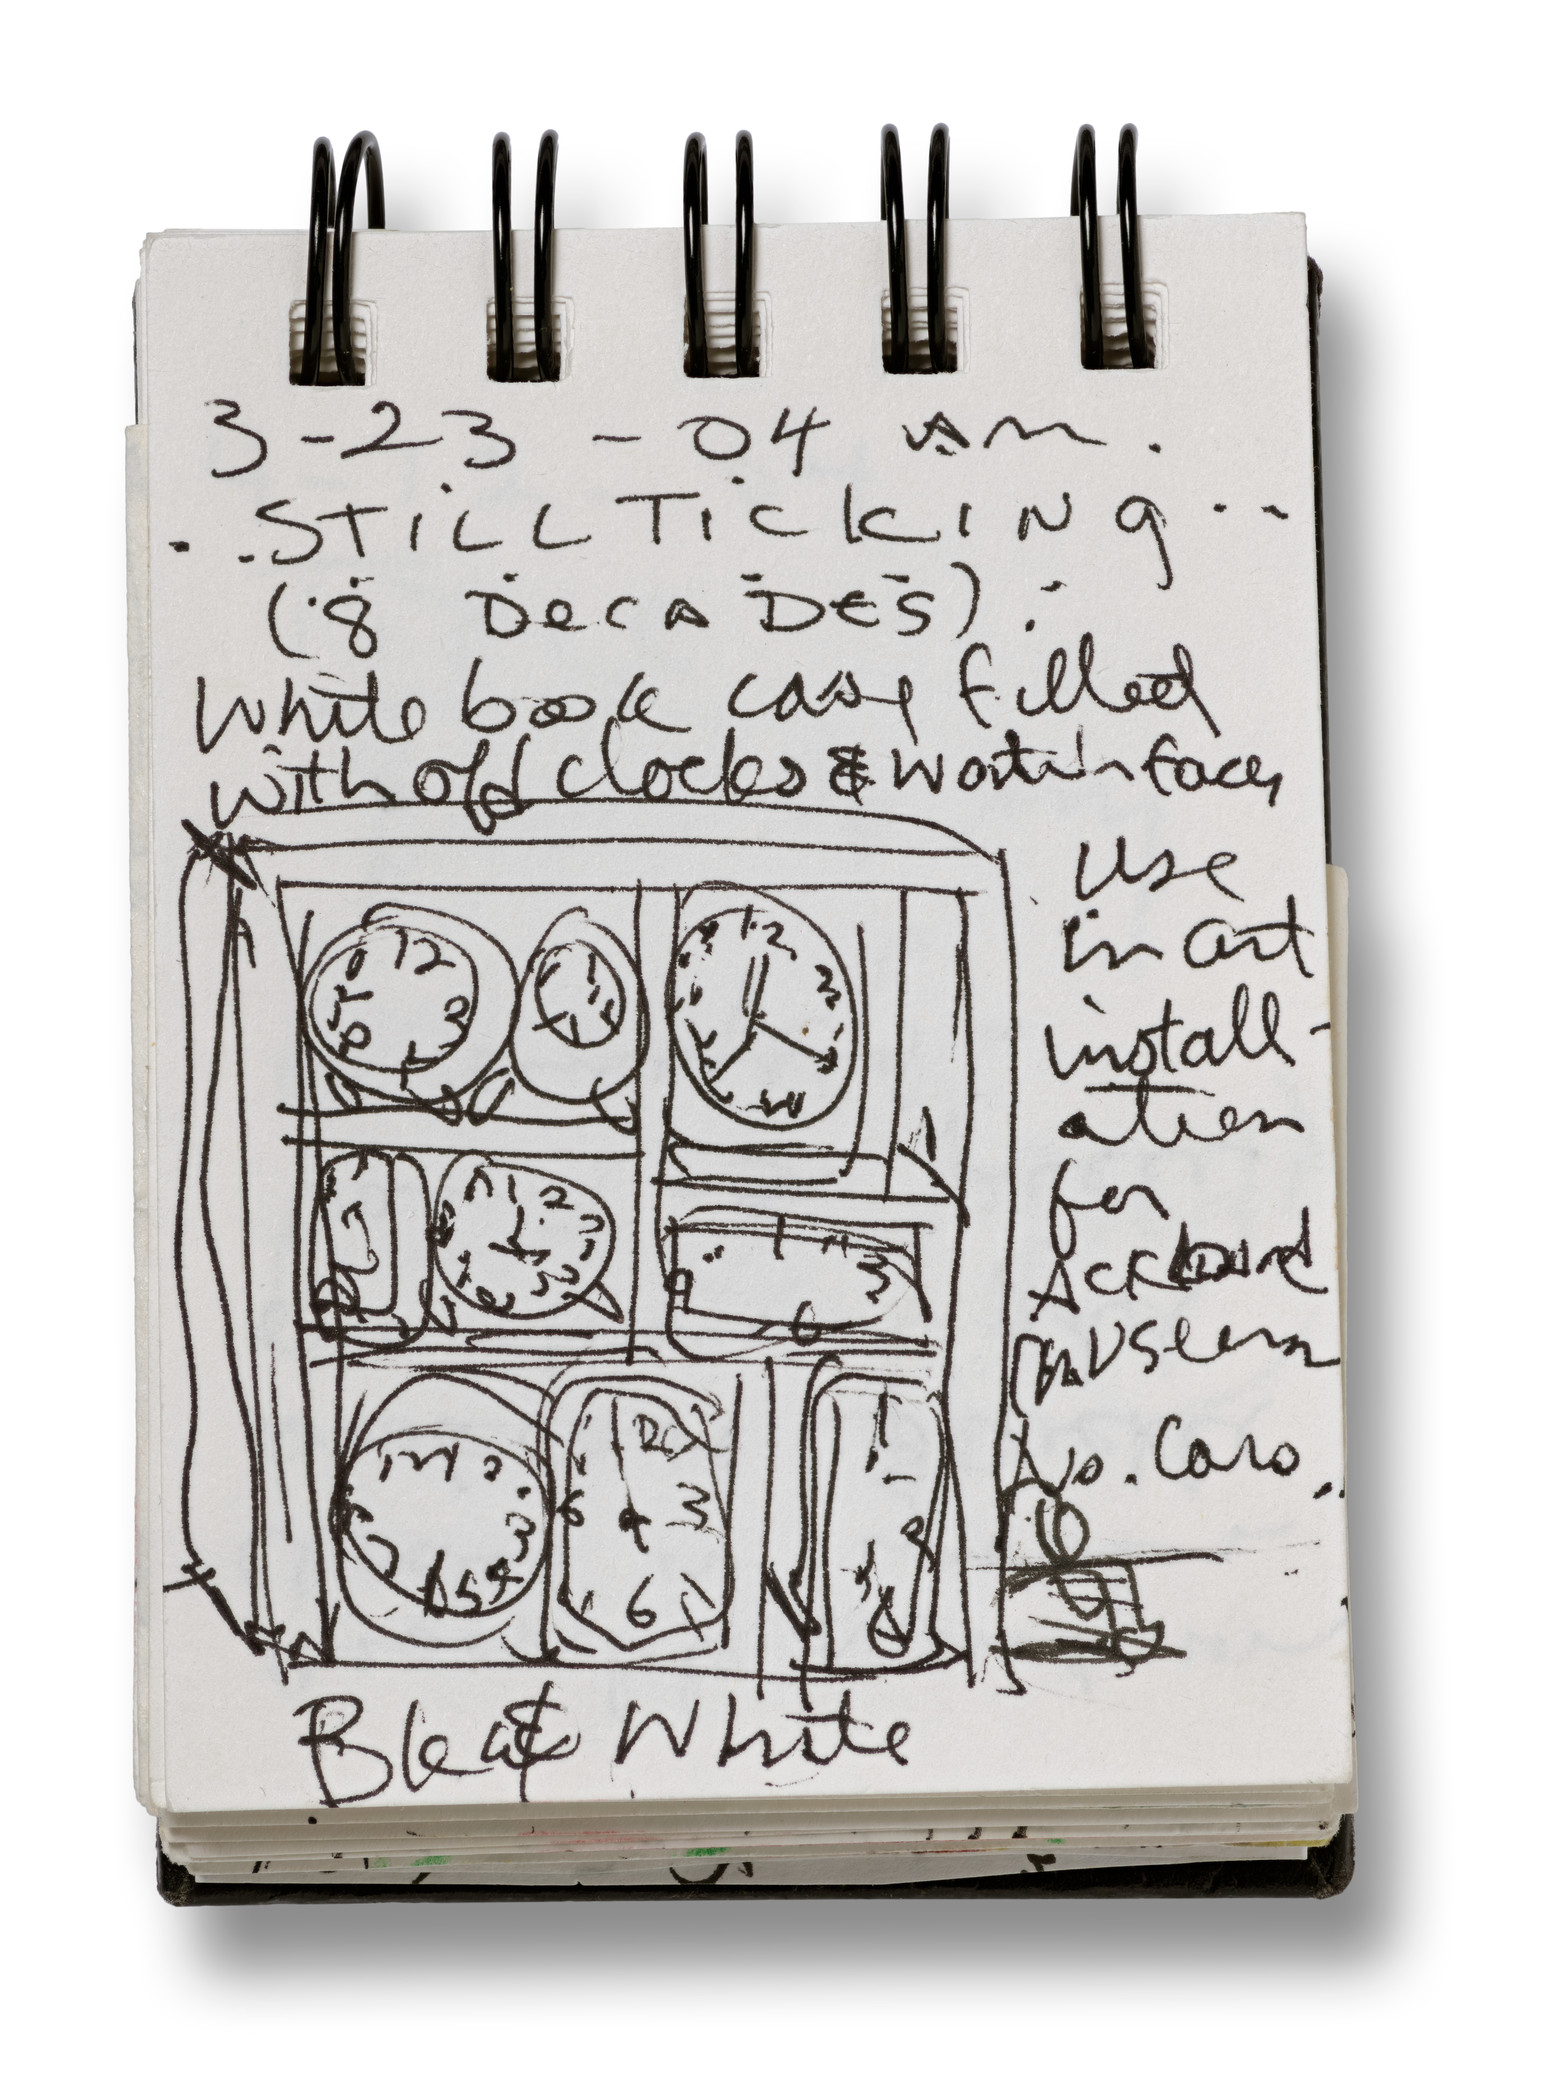 Betye Saar, page from 2004 sketchbook, March 23, 2004, collection of Betye Saar, courtesy of the artist and Roberts Projects, Los Angeles, ©Betye Saar, photo © Museum Associates/LACMA